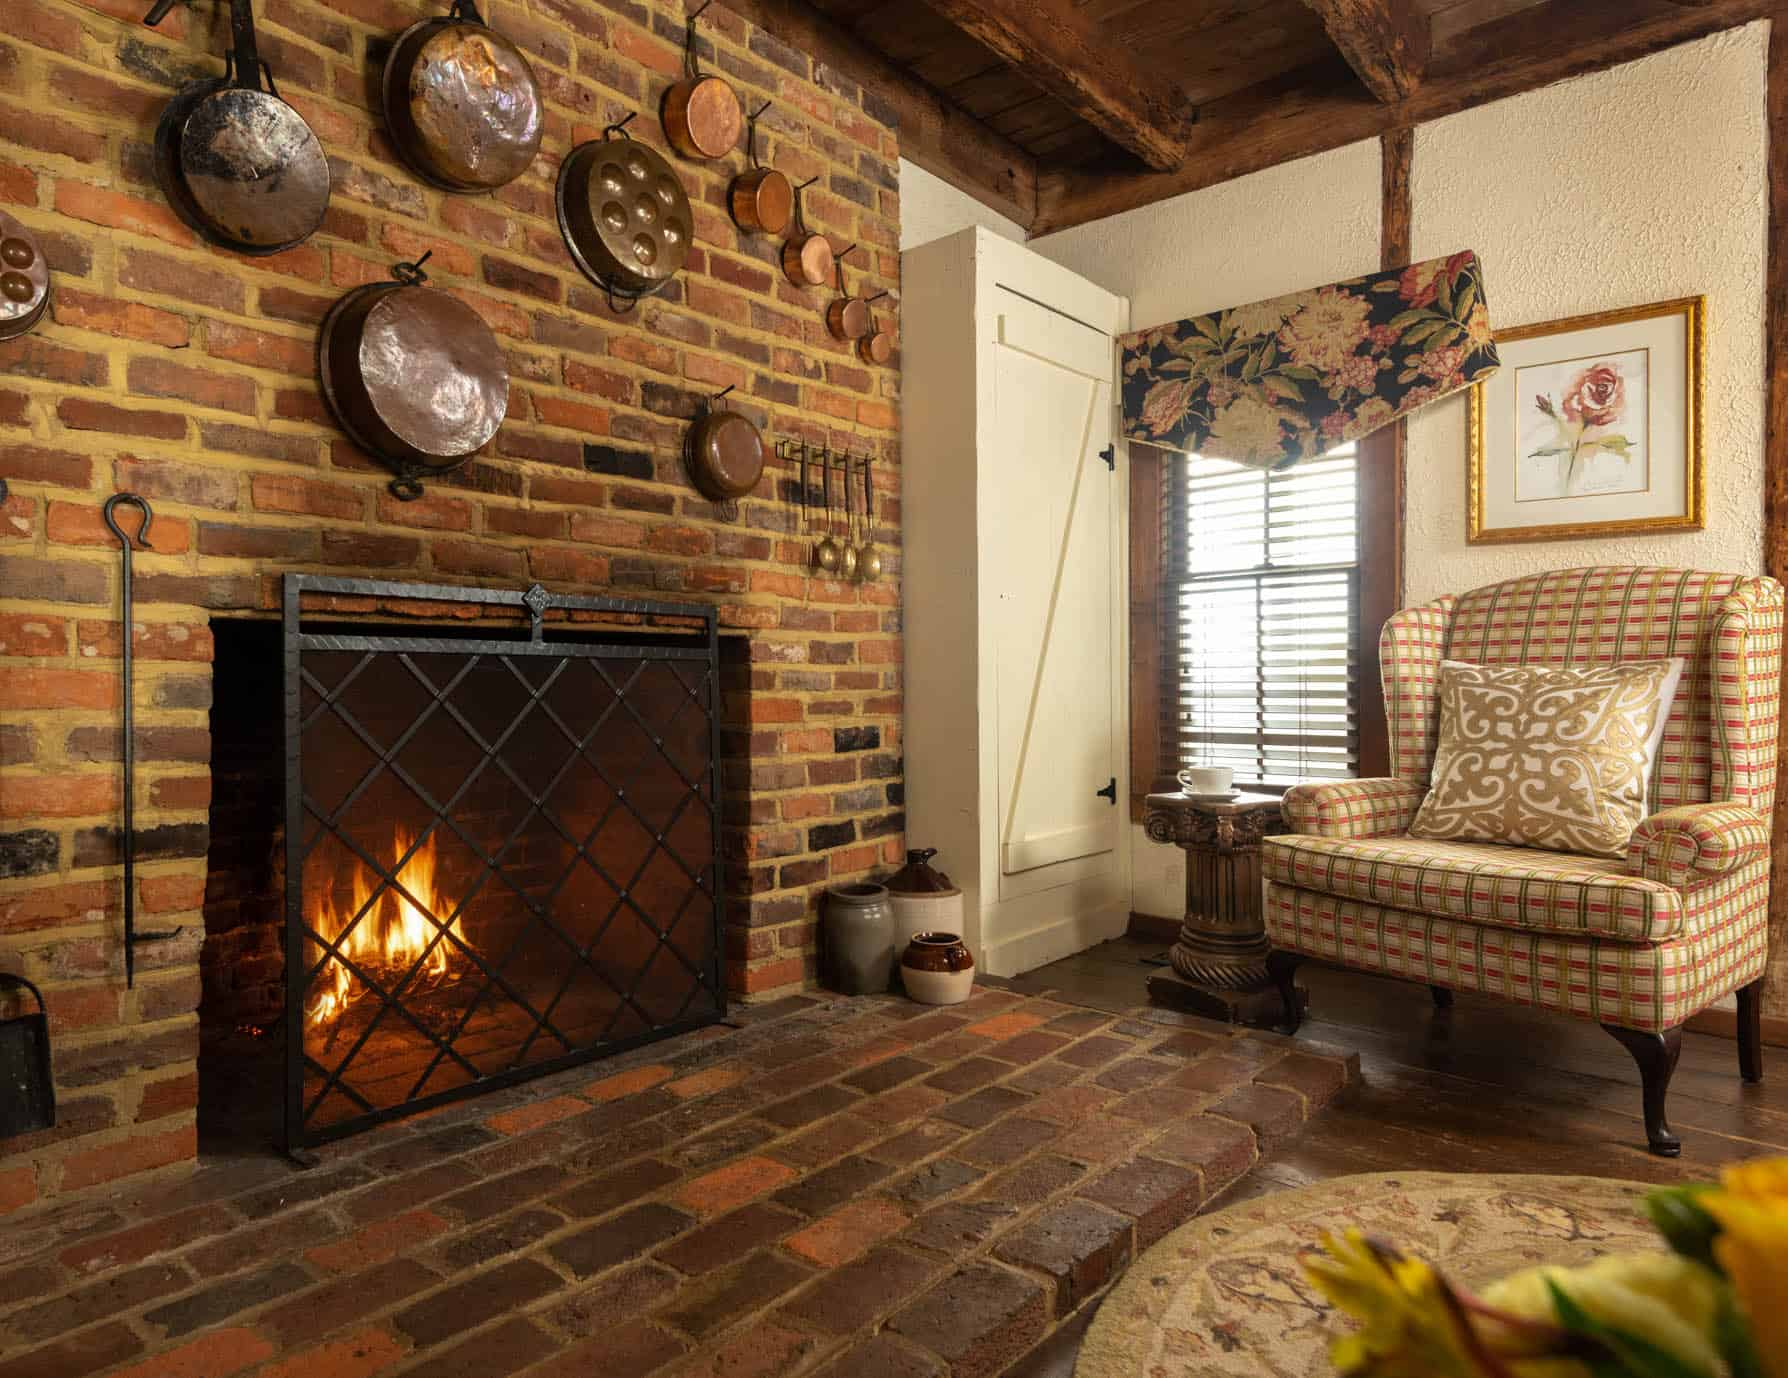 Brick wood-burning fireplace with a seating area